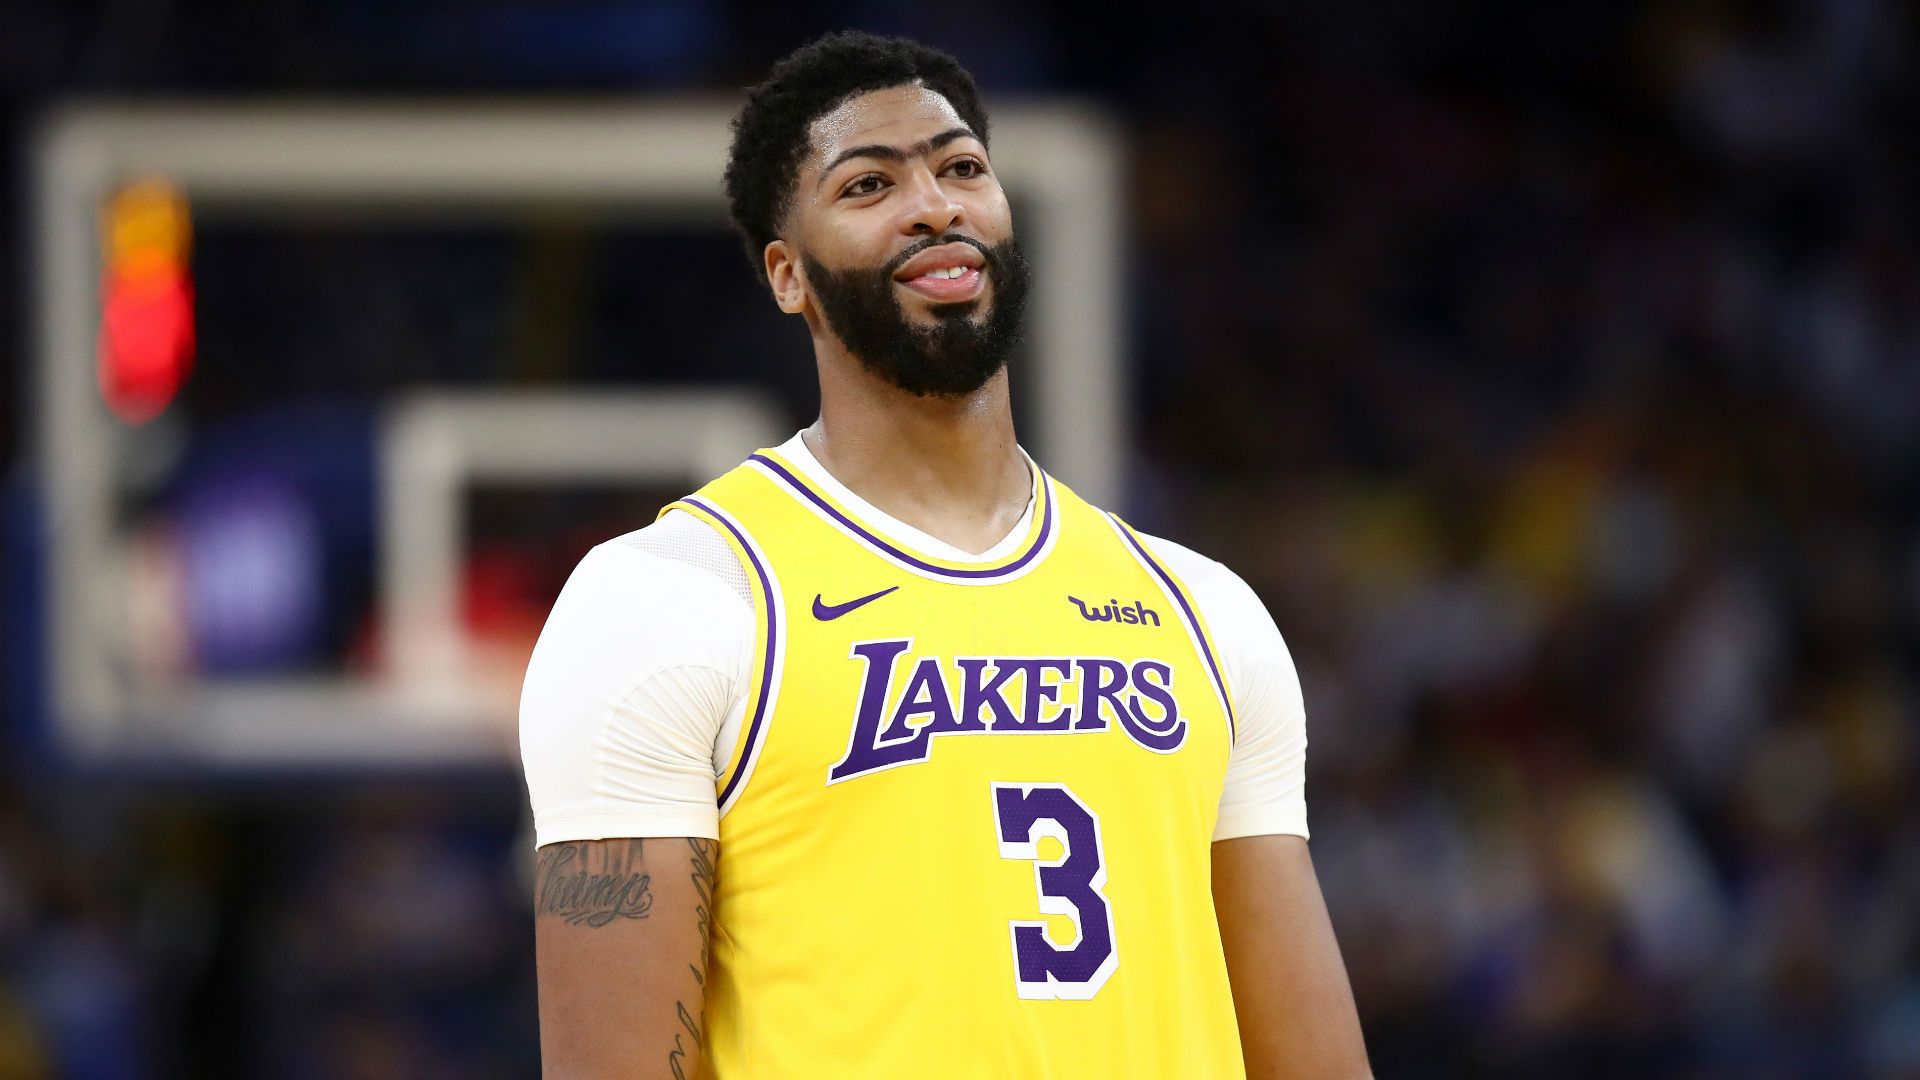 Anthony Davis Decline the Max Contract from Lakers, Want to Explore Free Agent Deals